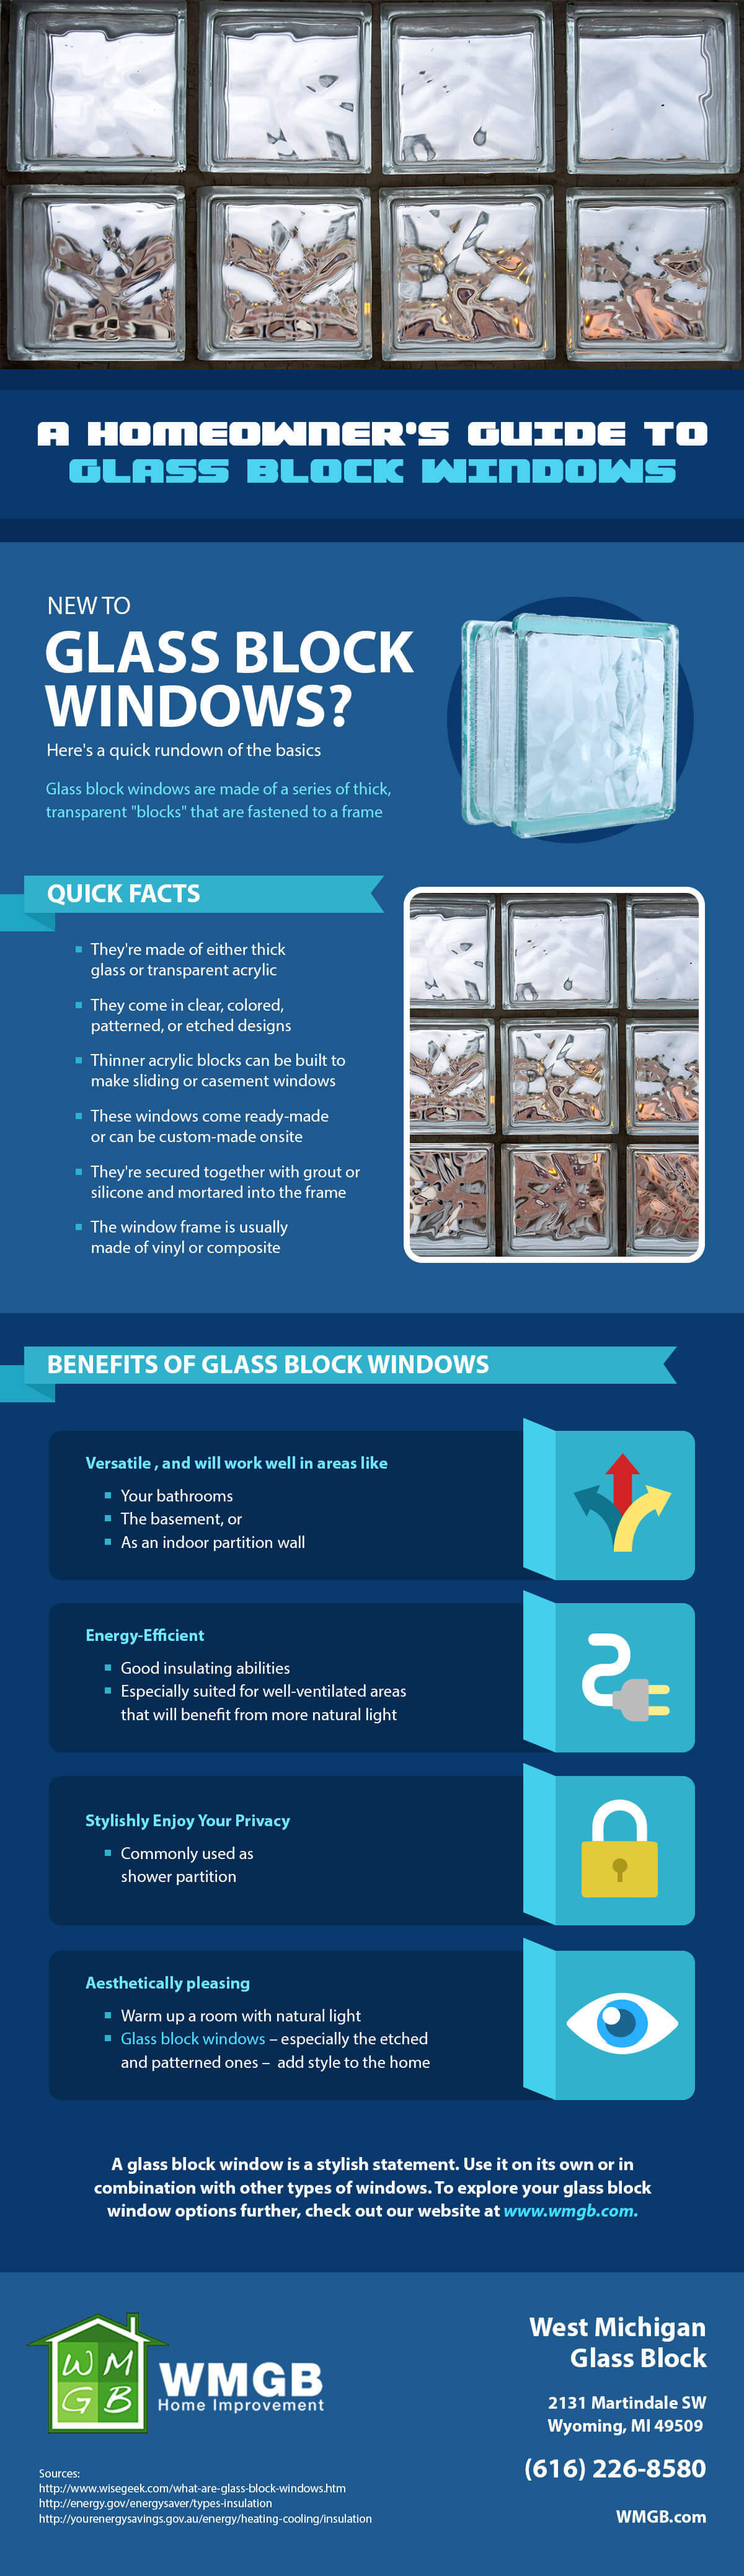 A Homeowner's Guide to Glass Block Windows